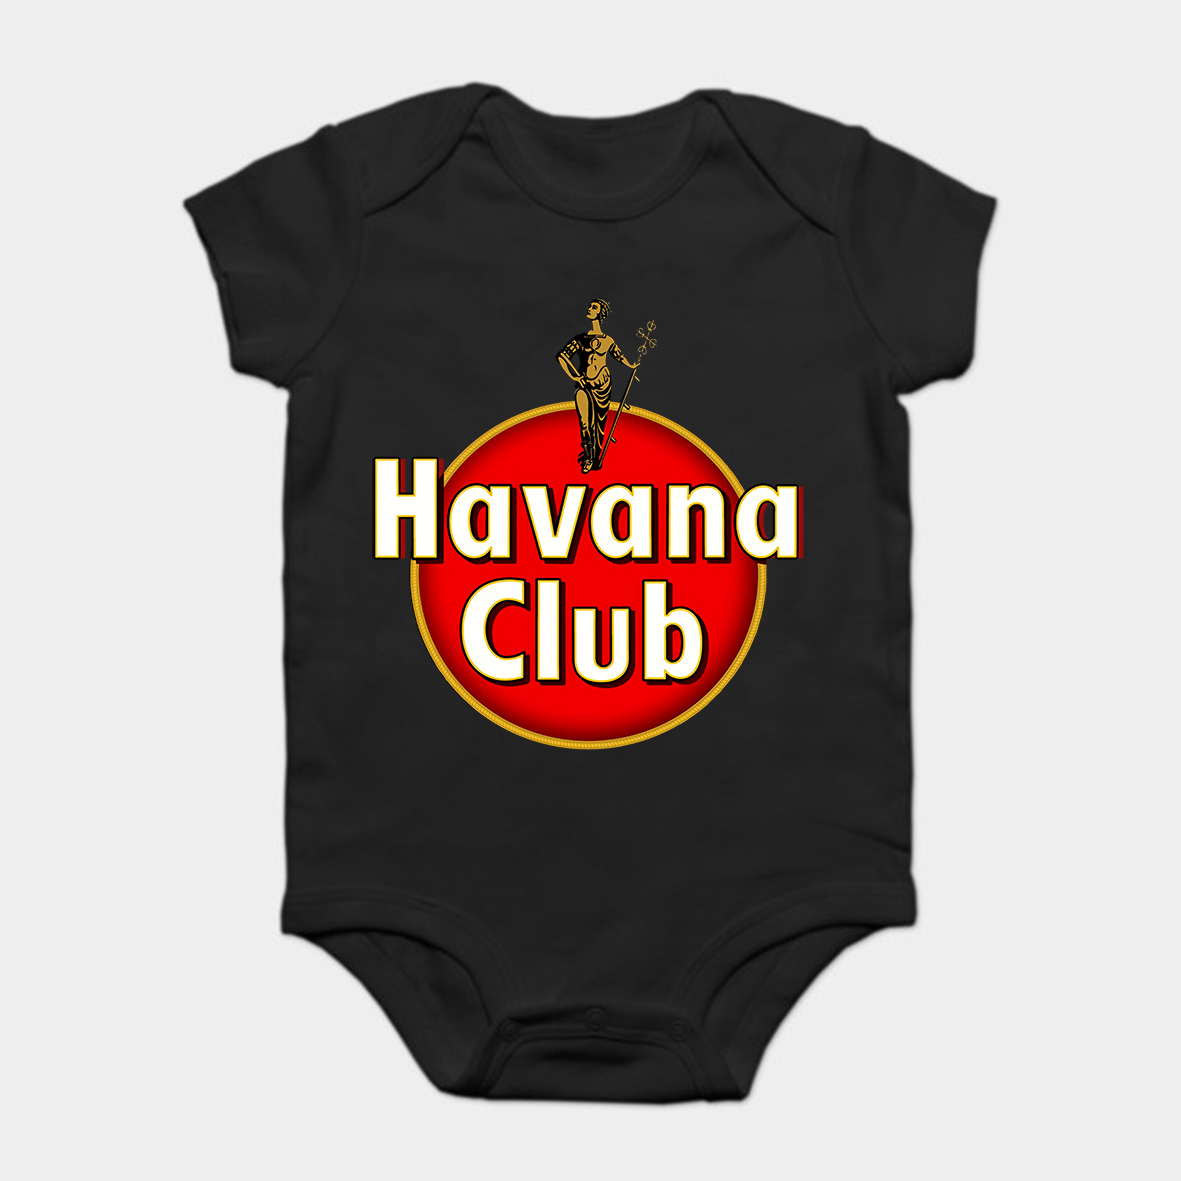 Bodysuits Boys' Baby Clothing Obliging Baby Onesie Baby Bodysuits Kid T Shirt Uomo Donna Havana Club El Ron De Cuba